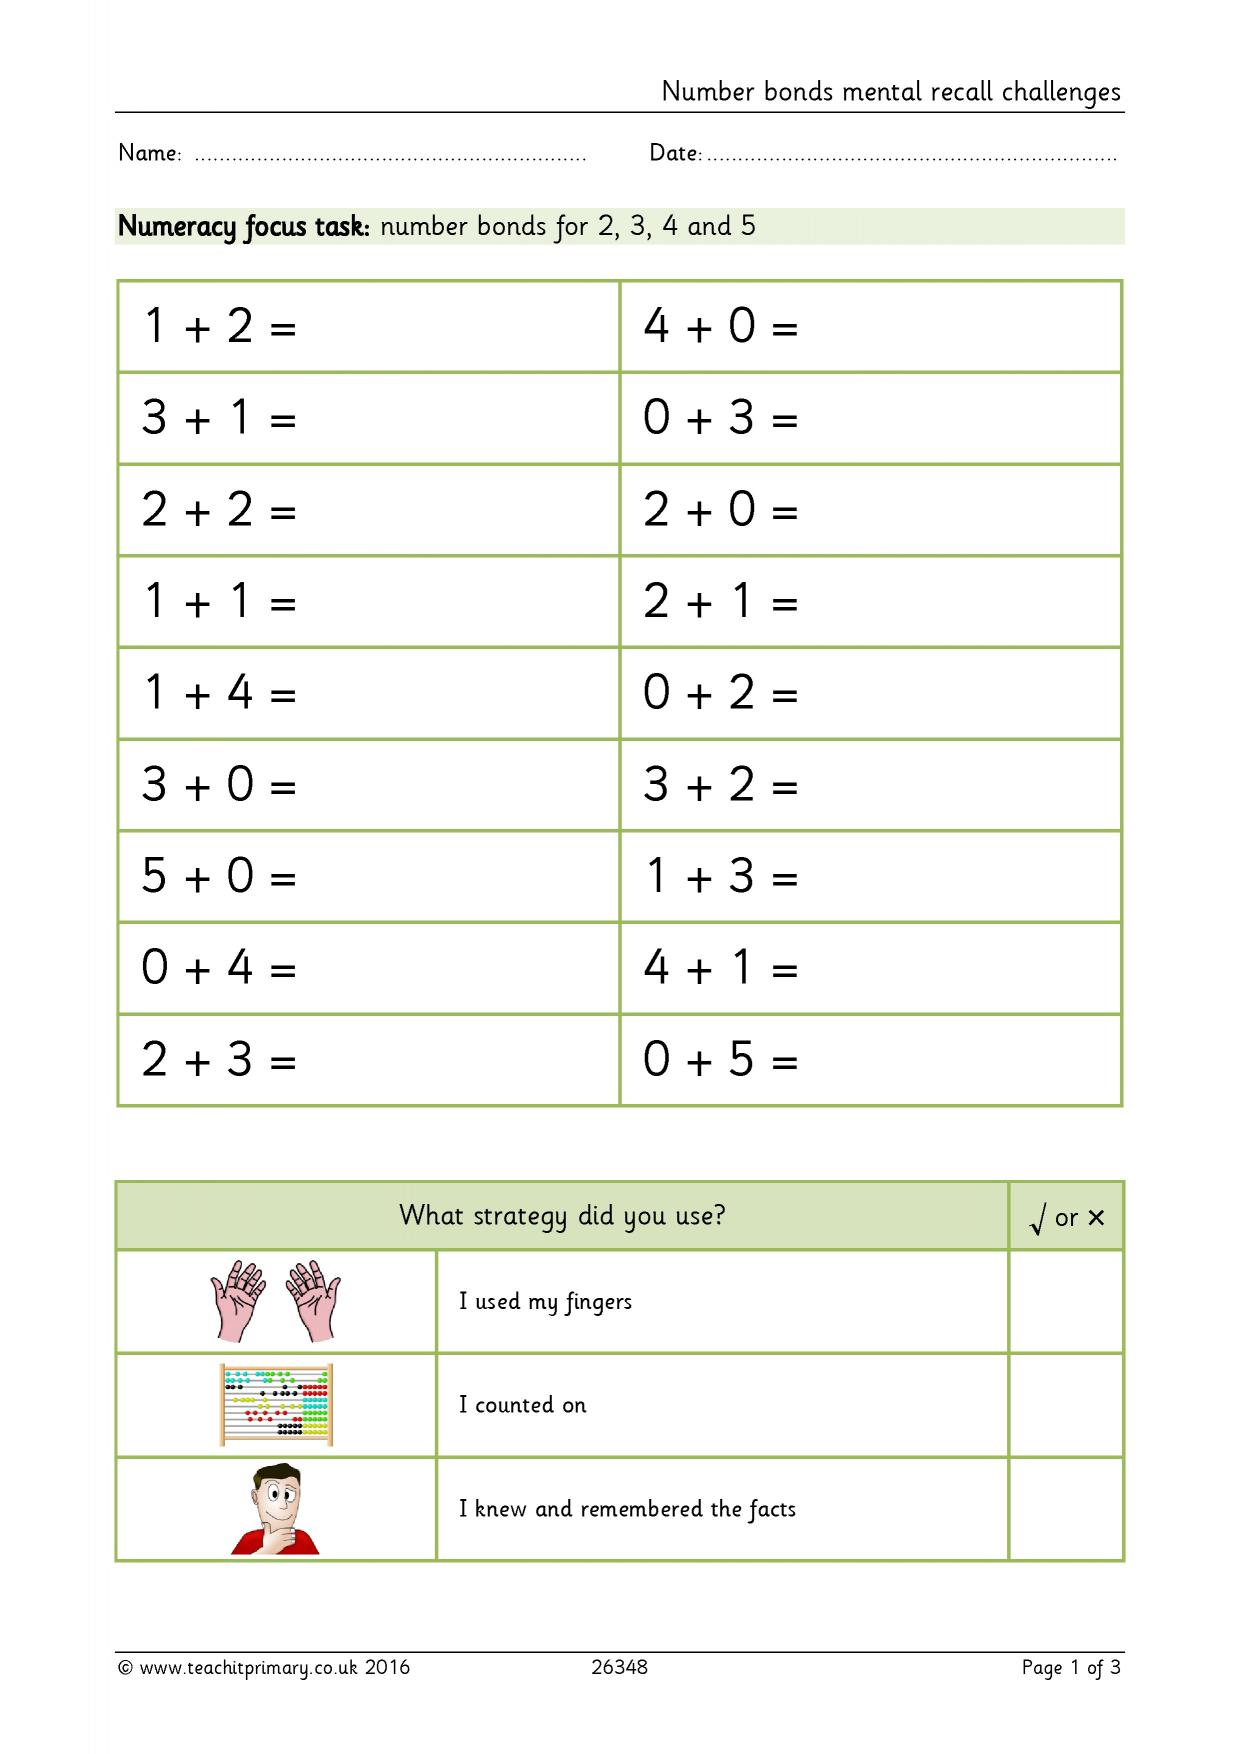 Worksheet number bond worksheets to 10 worksheet fun worksheet worksheet number bond worksheets to 10 number bonds mental recall challenges addition and subtraction the basics ibookread PDF